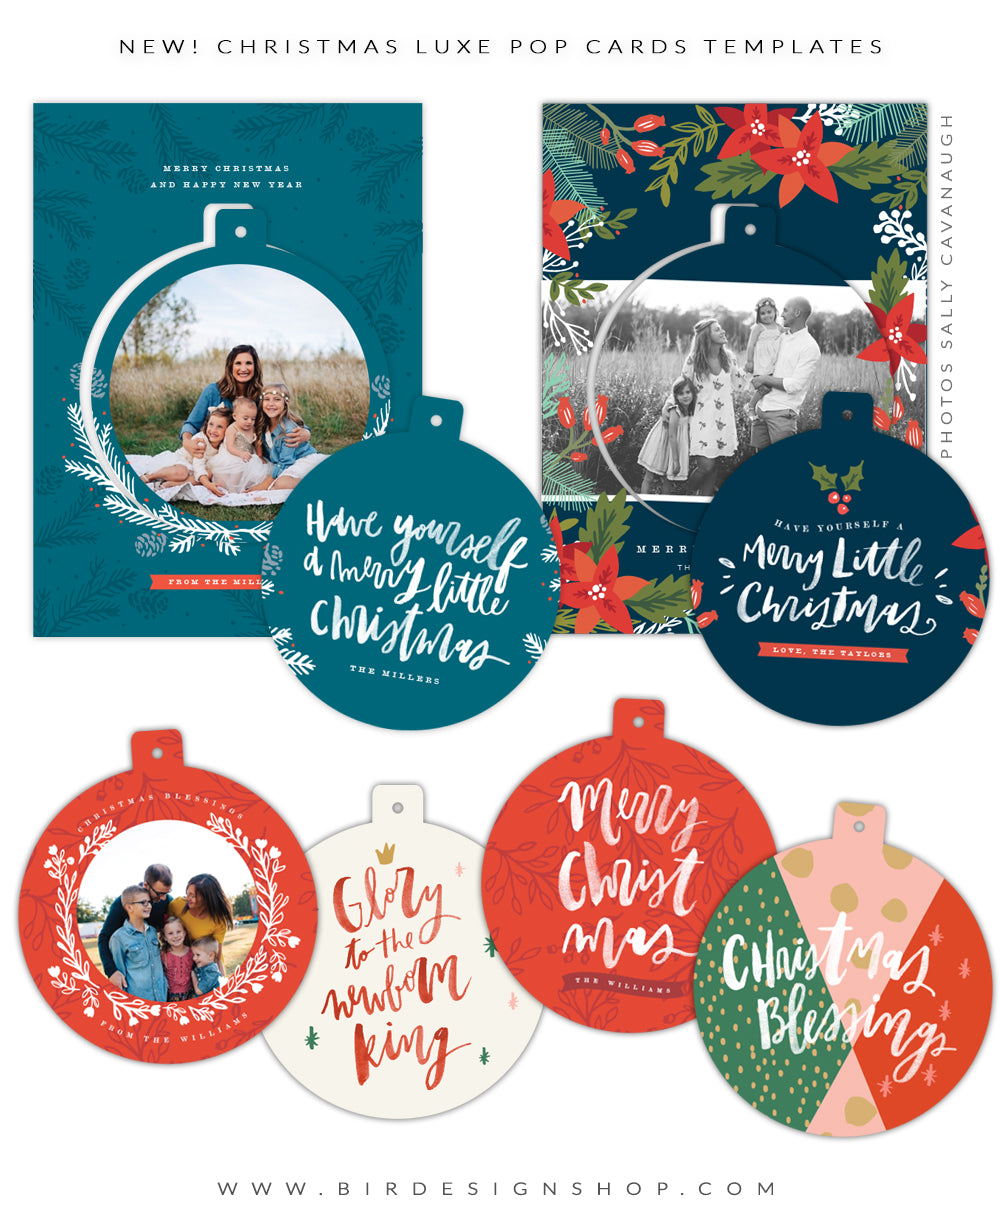 christmas luxe pop cards